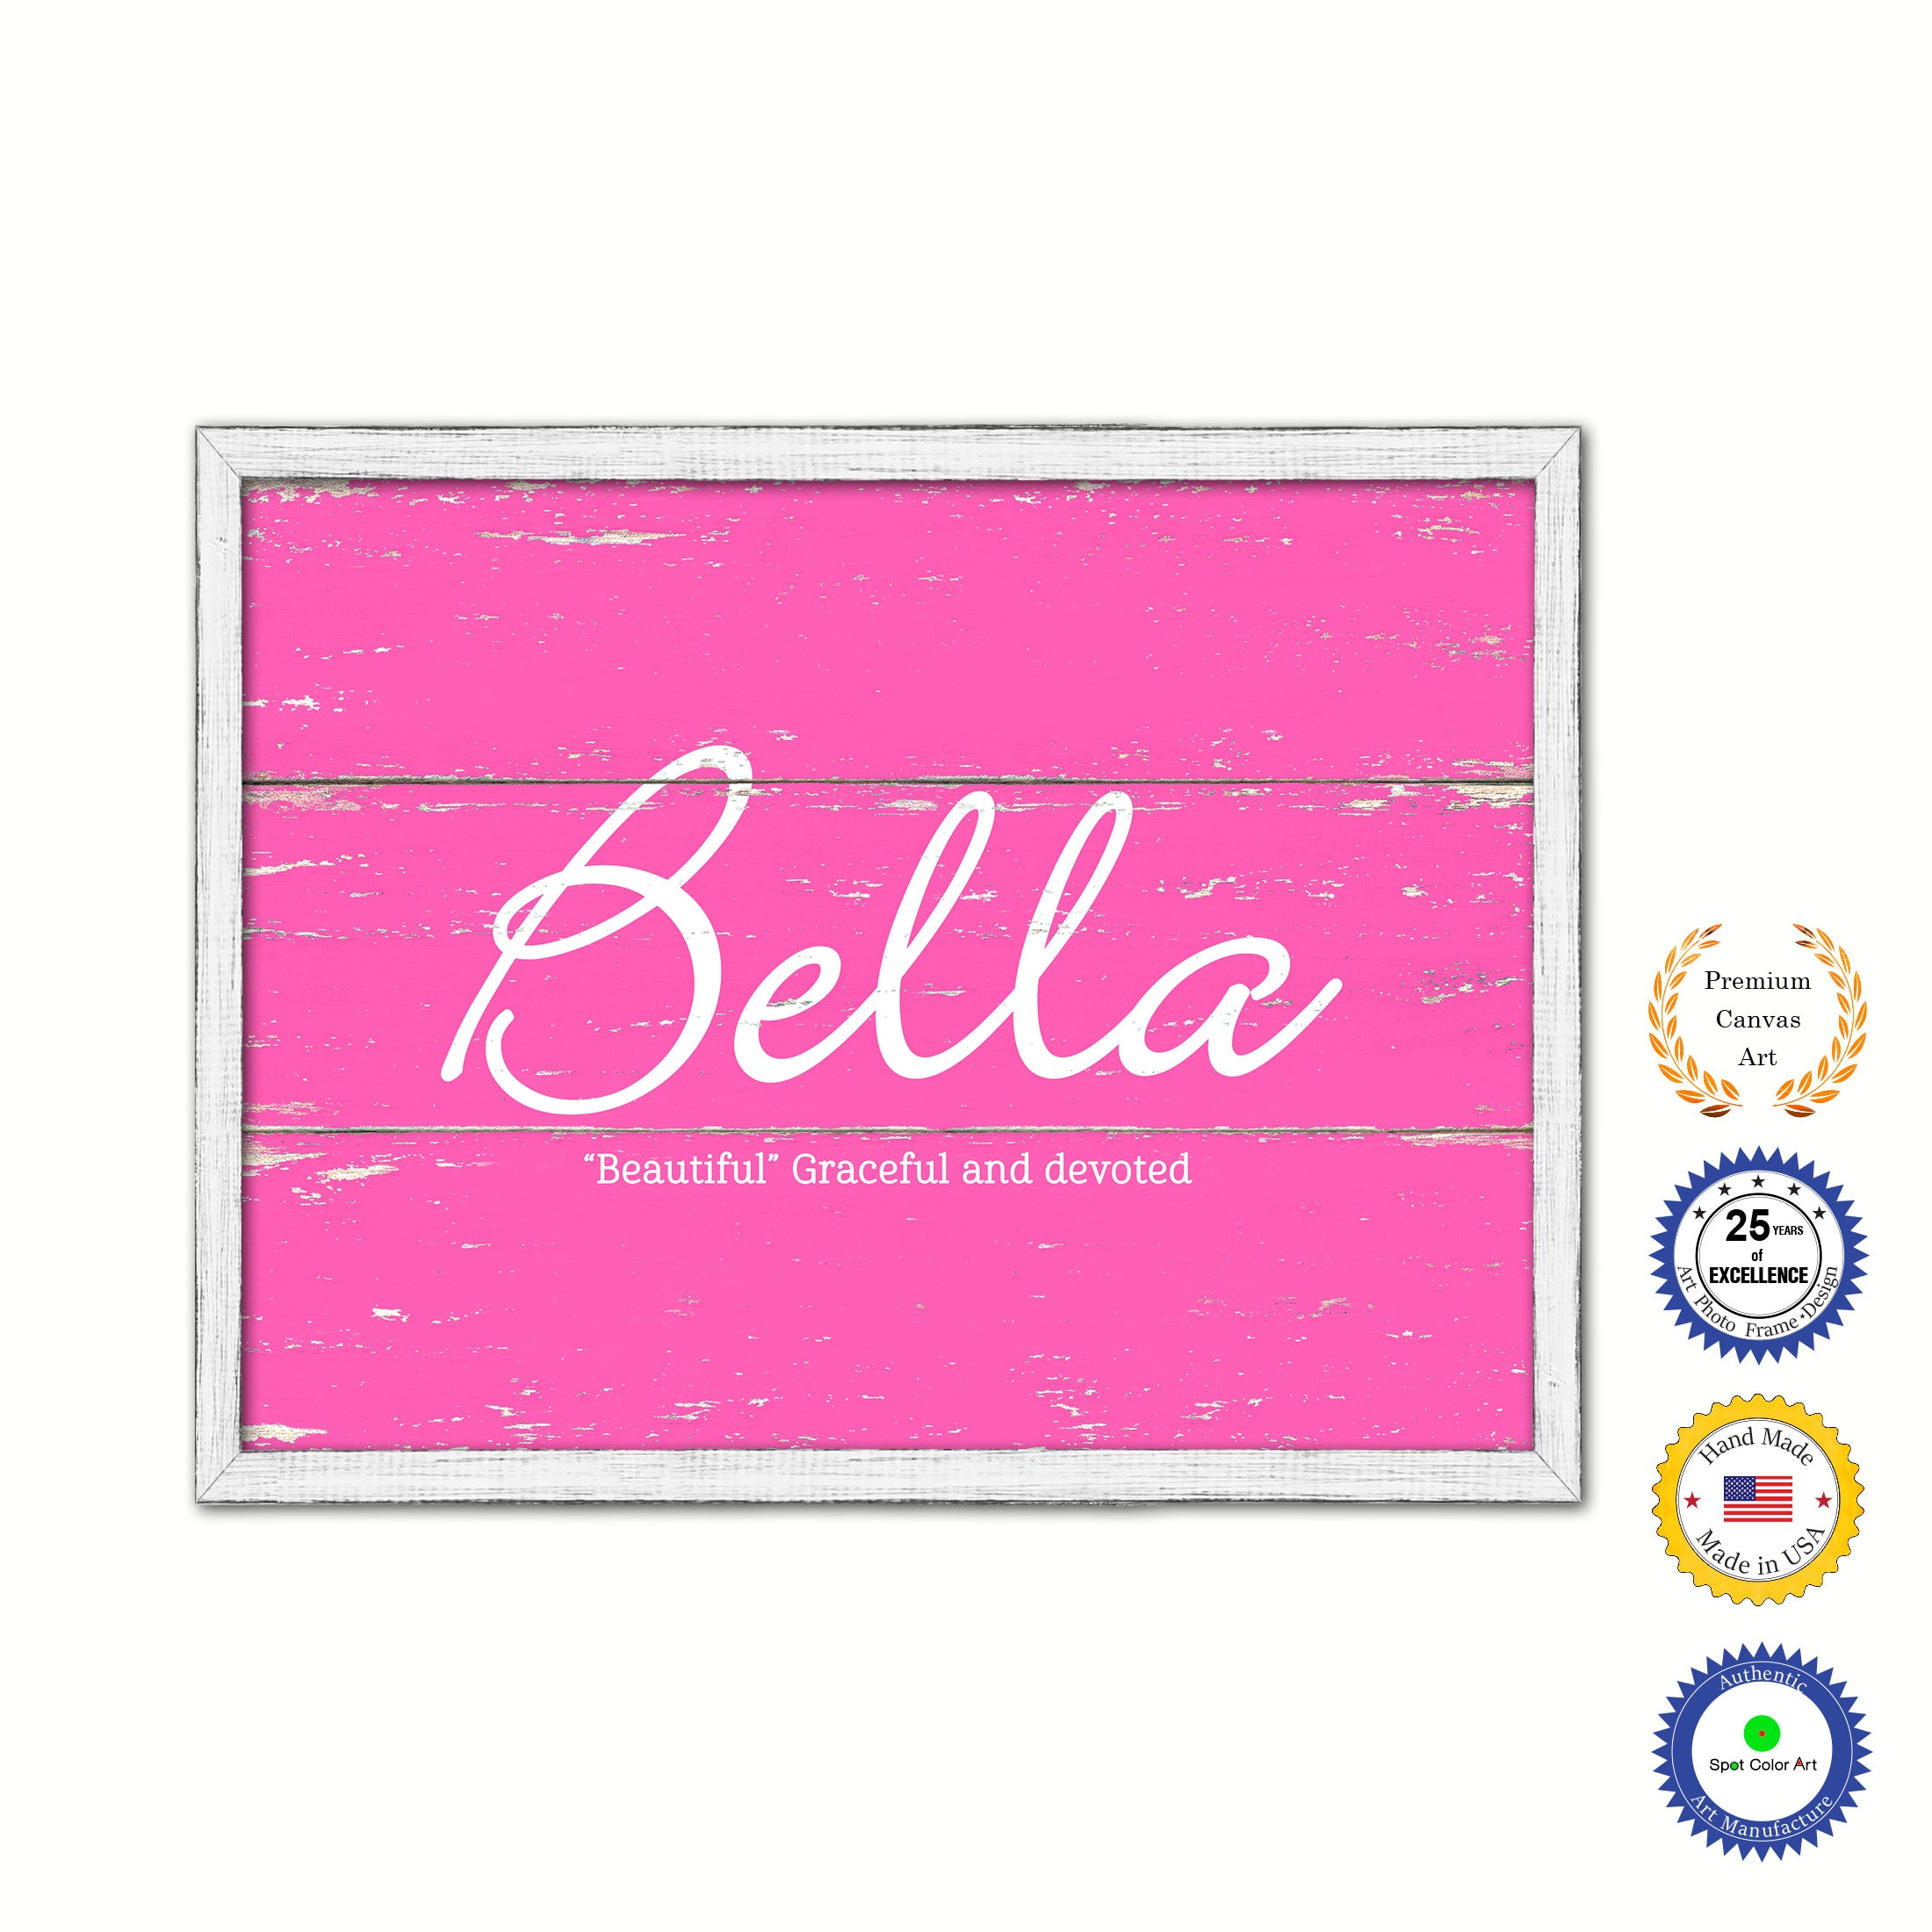 Bella Name Plate White Wash Wood Frame Canvas Print Boutique Cottage Decor Shabby Chic